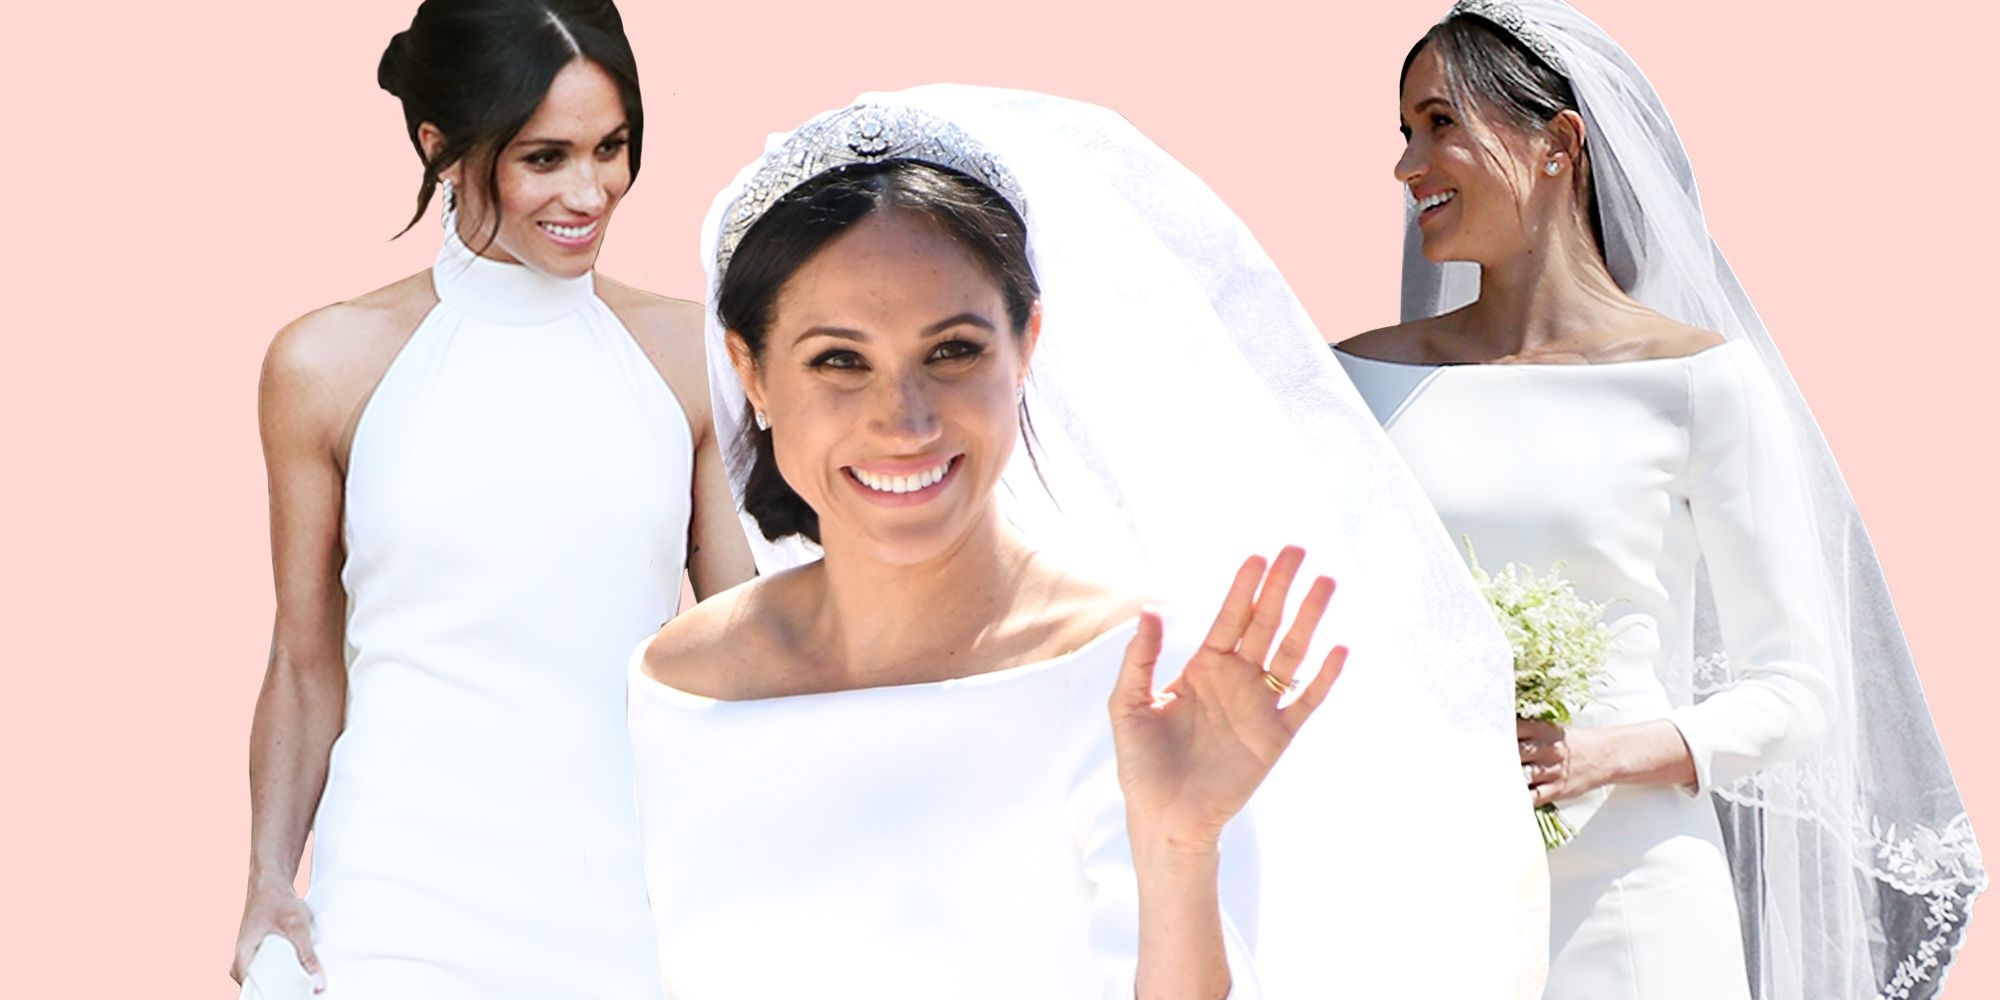 meghan markle effect on the bridal industry